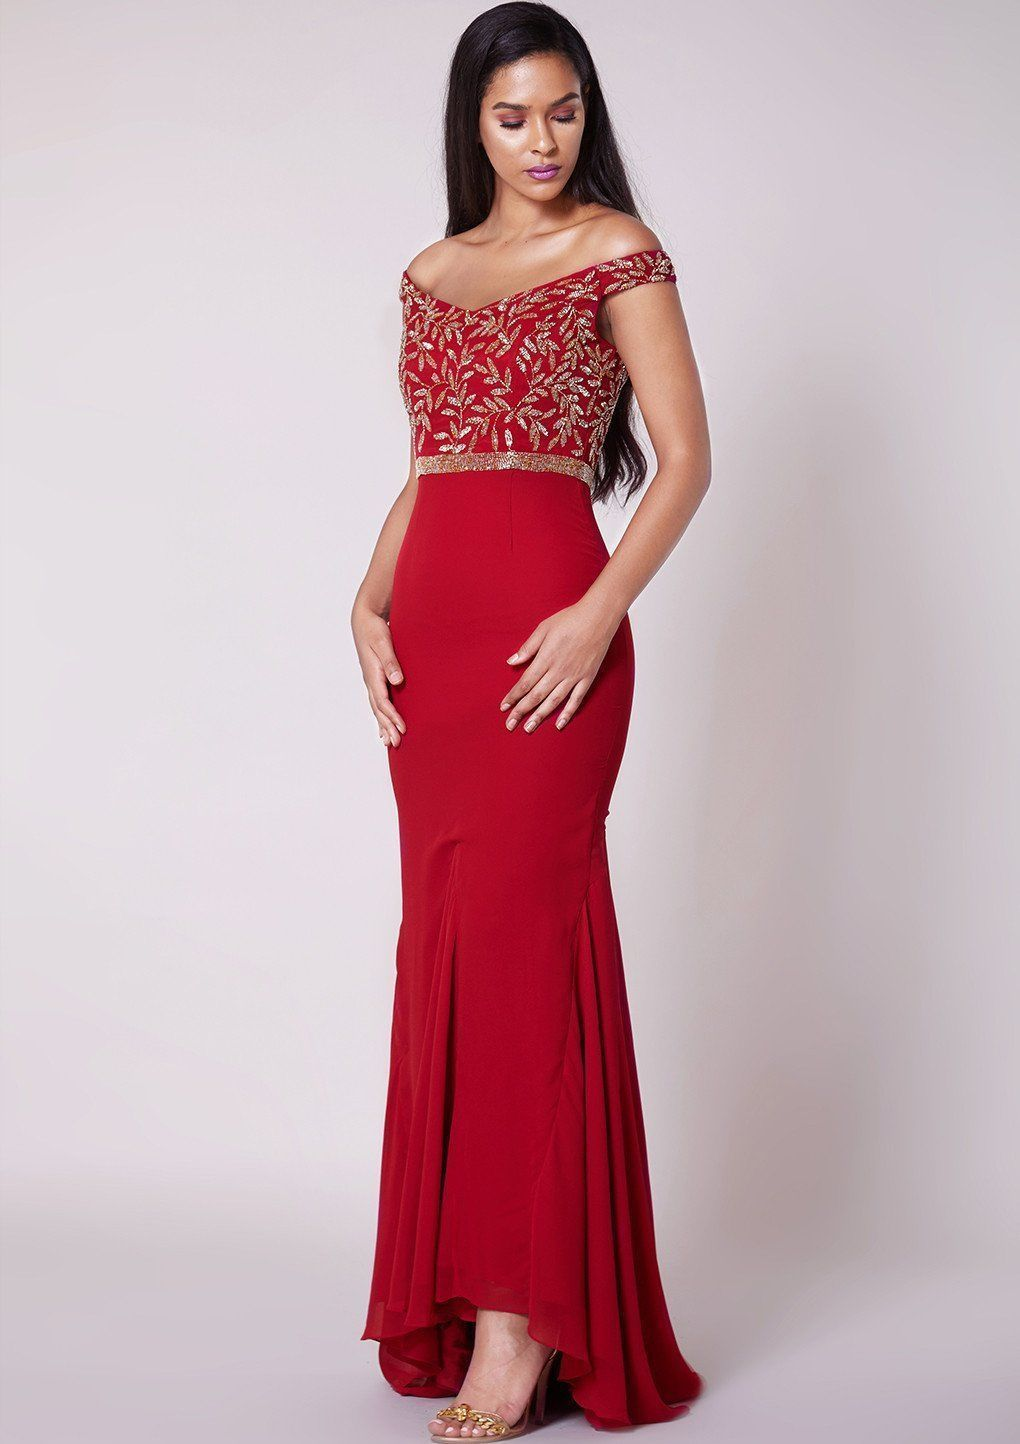 Virgos Lounge Red Maxi Dress Wedding Cocktail Evening Party Size Uk